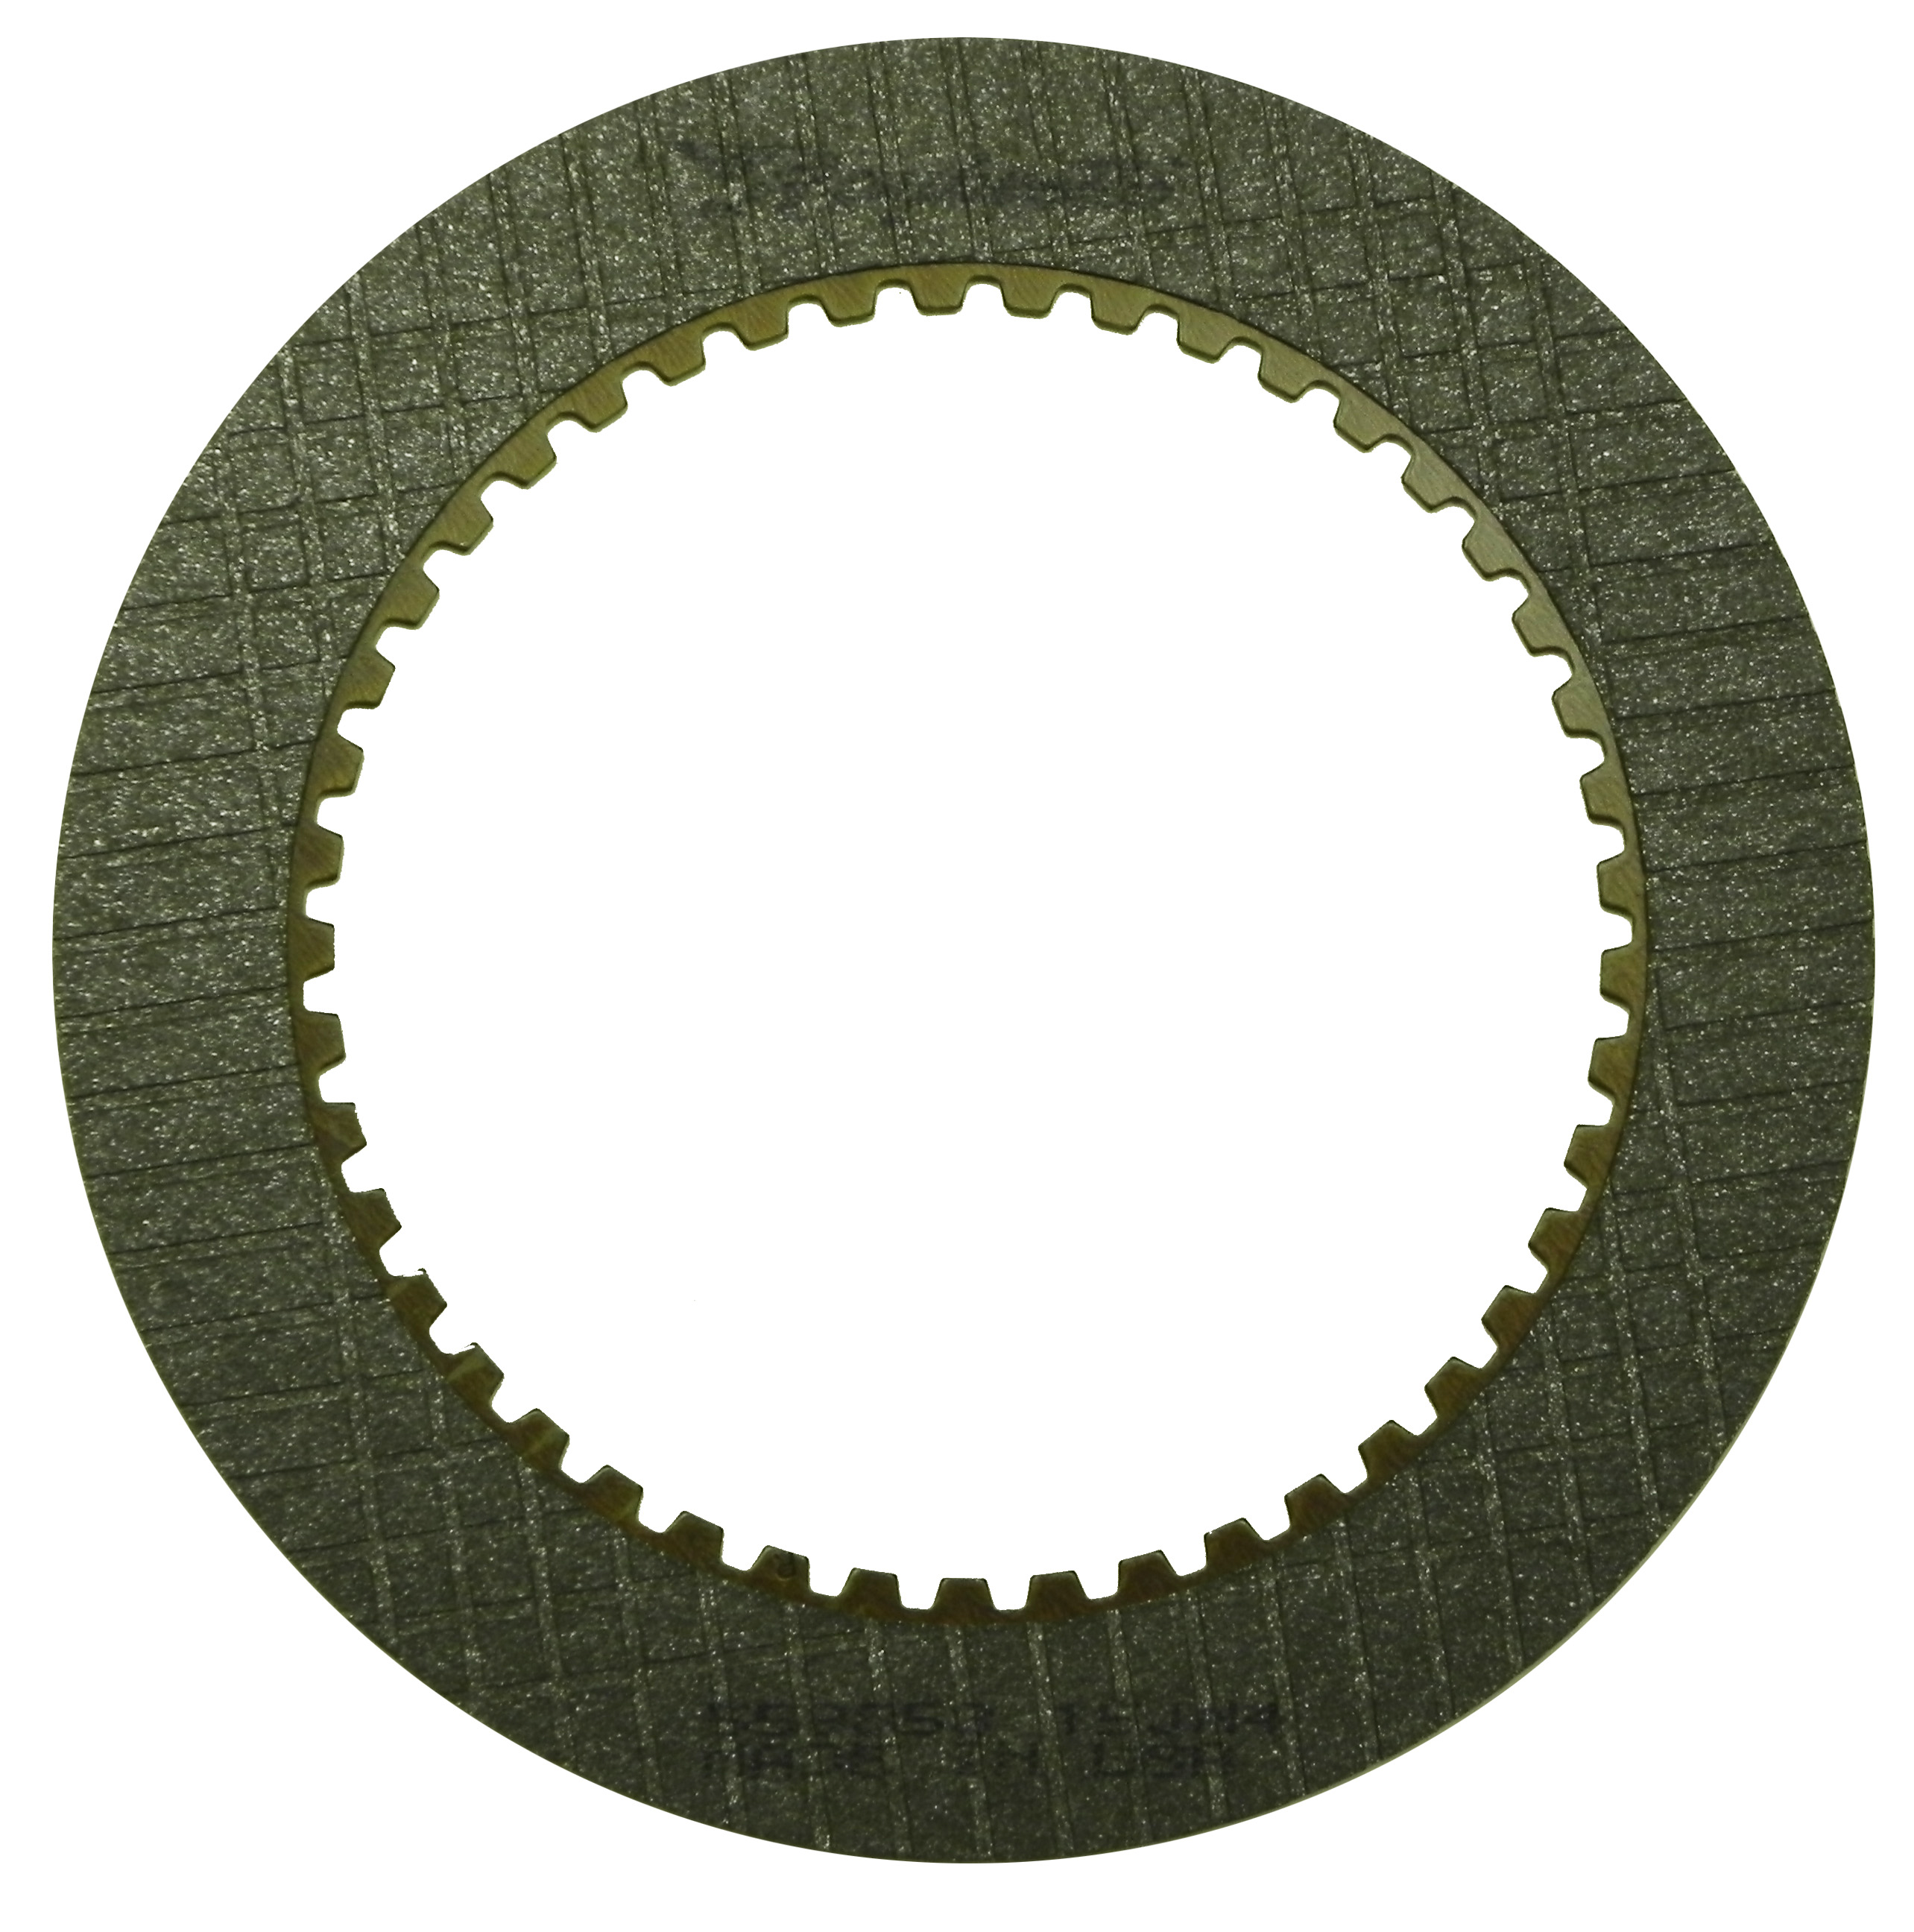 R559853 | 1968-1981 Friction Clutch Plate Graphitic Direct Graphitic, Selective